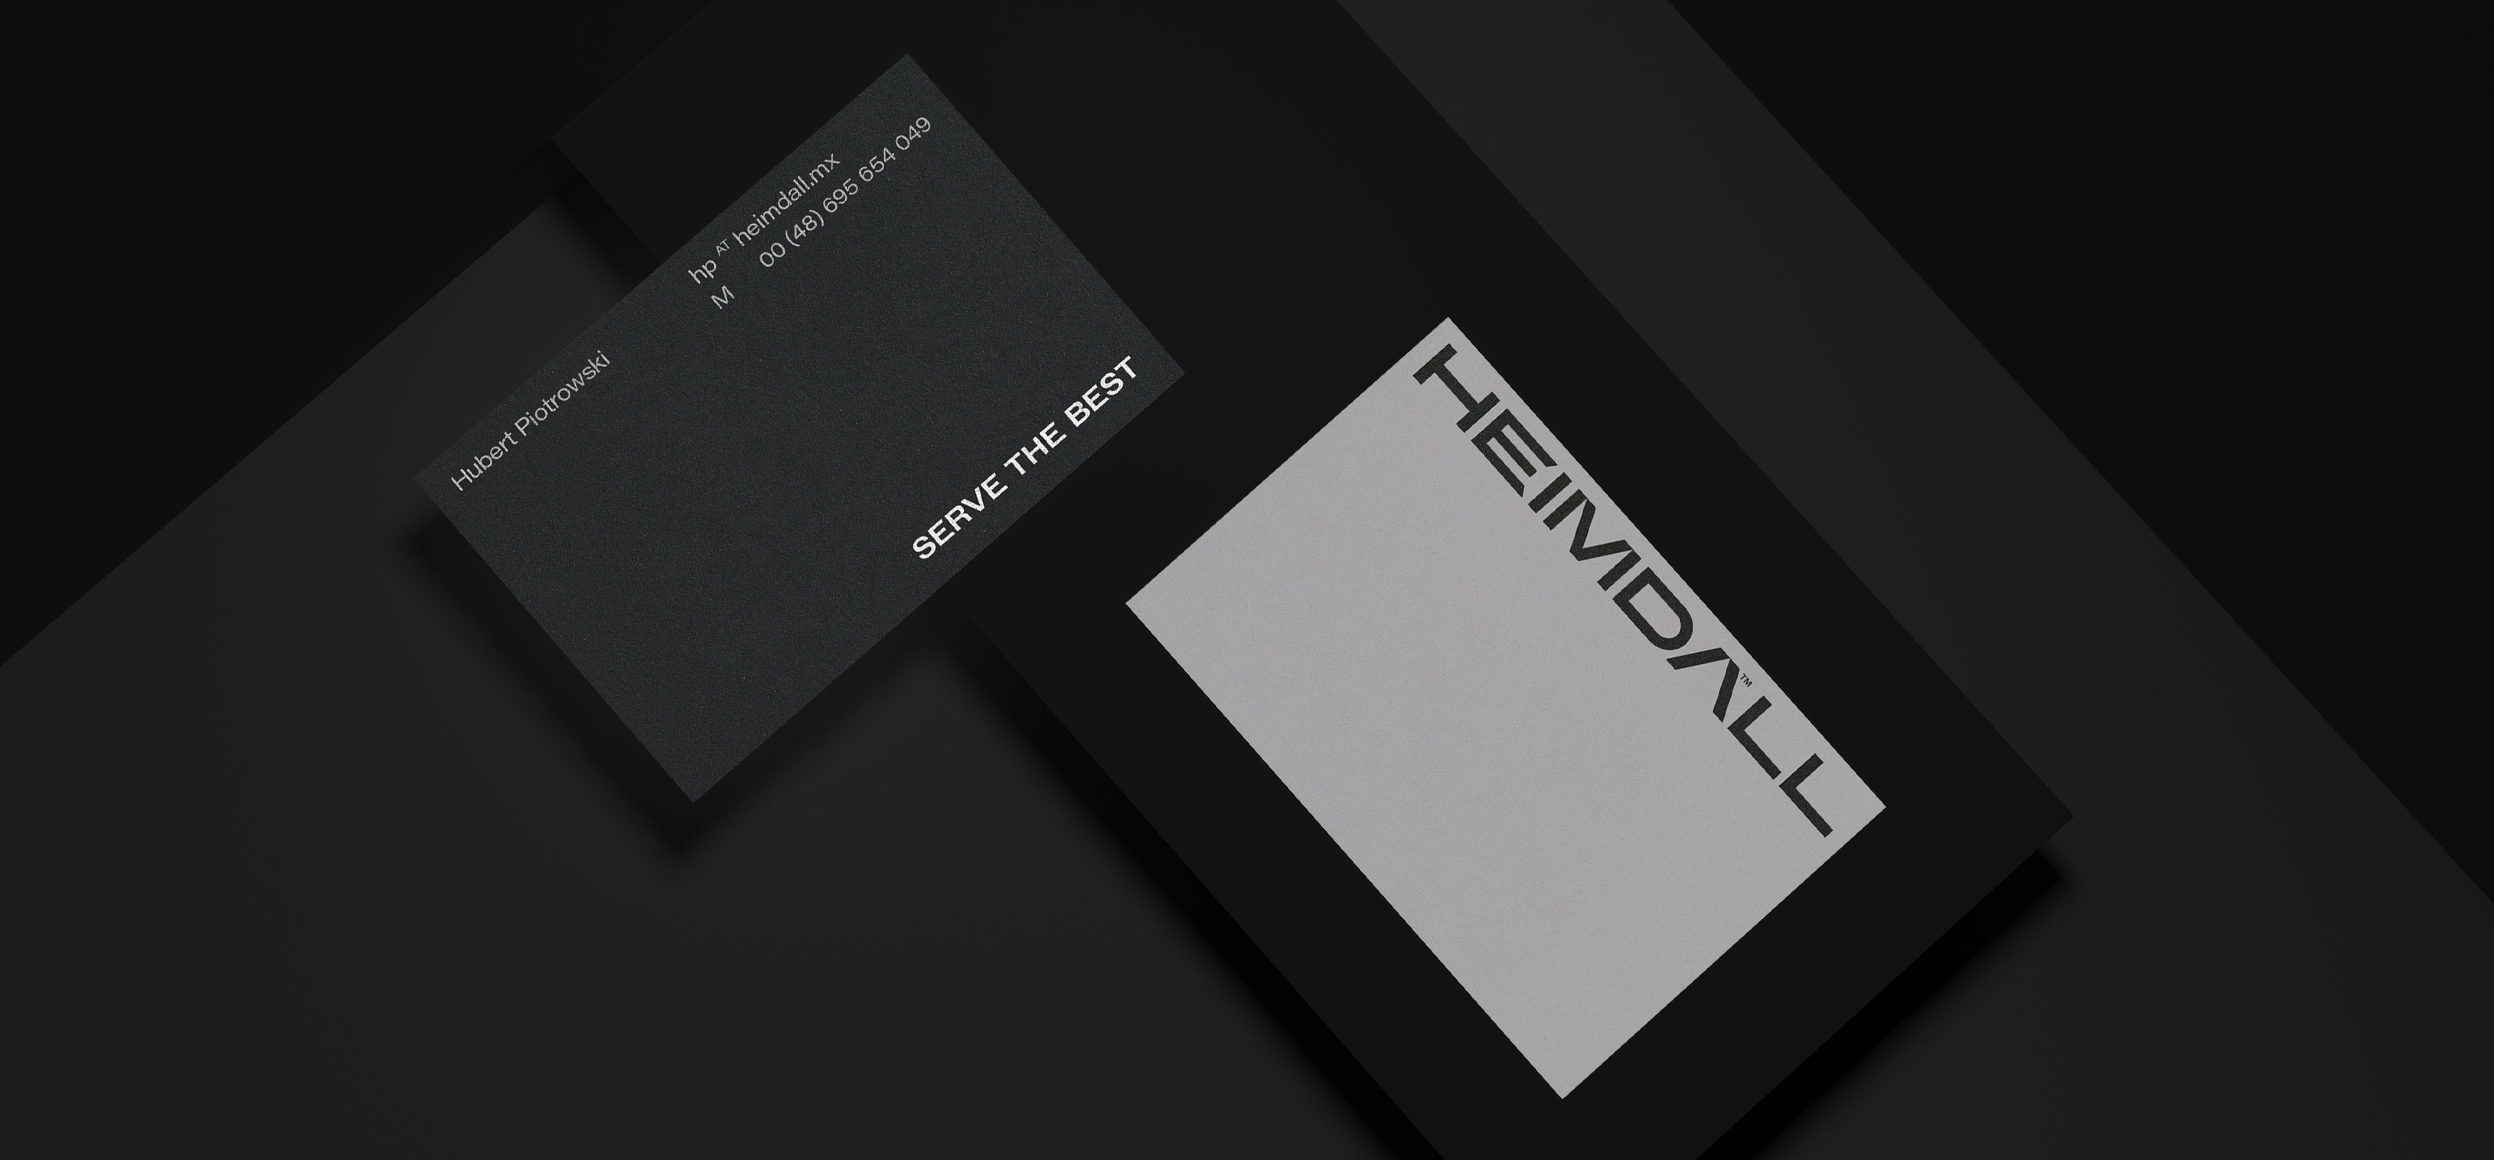 Redkroft. – brand design studio Heimdall – branding that changes the image of the roofing industry.